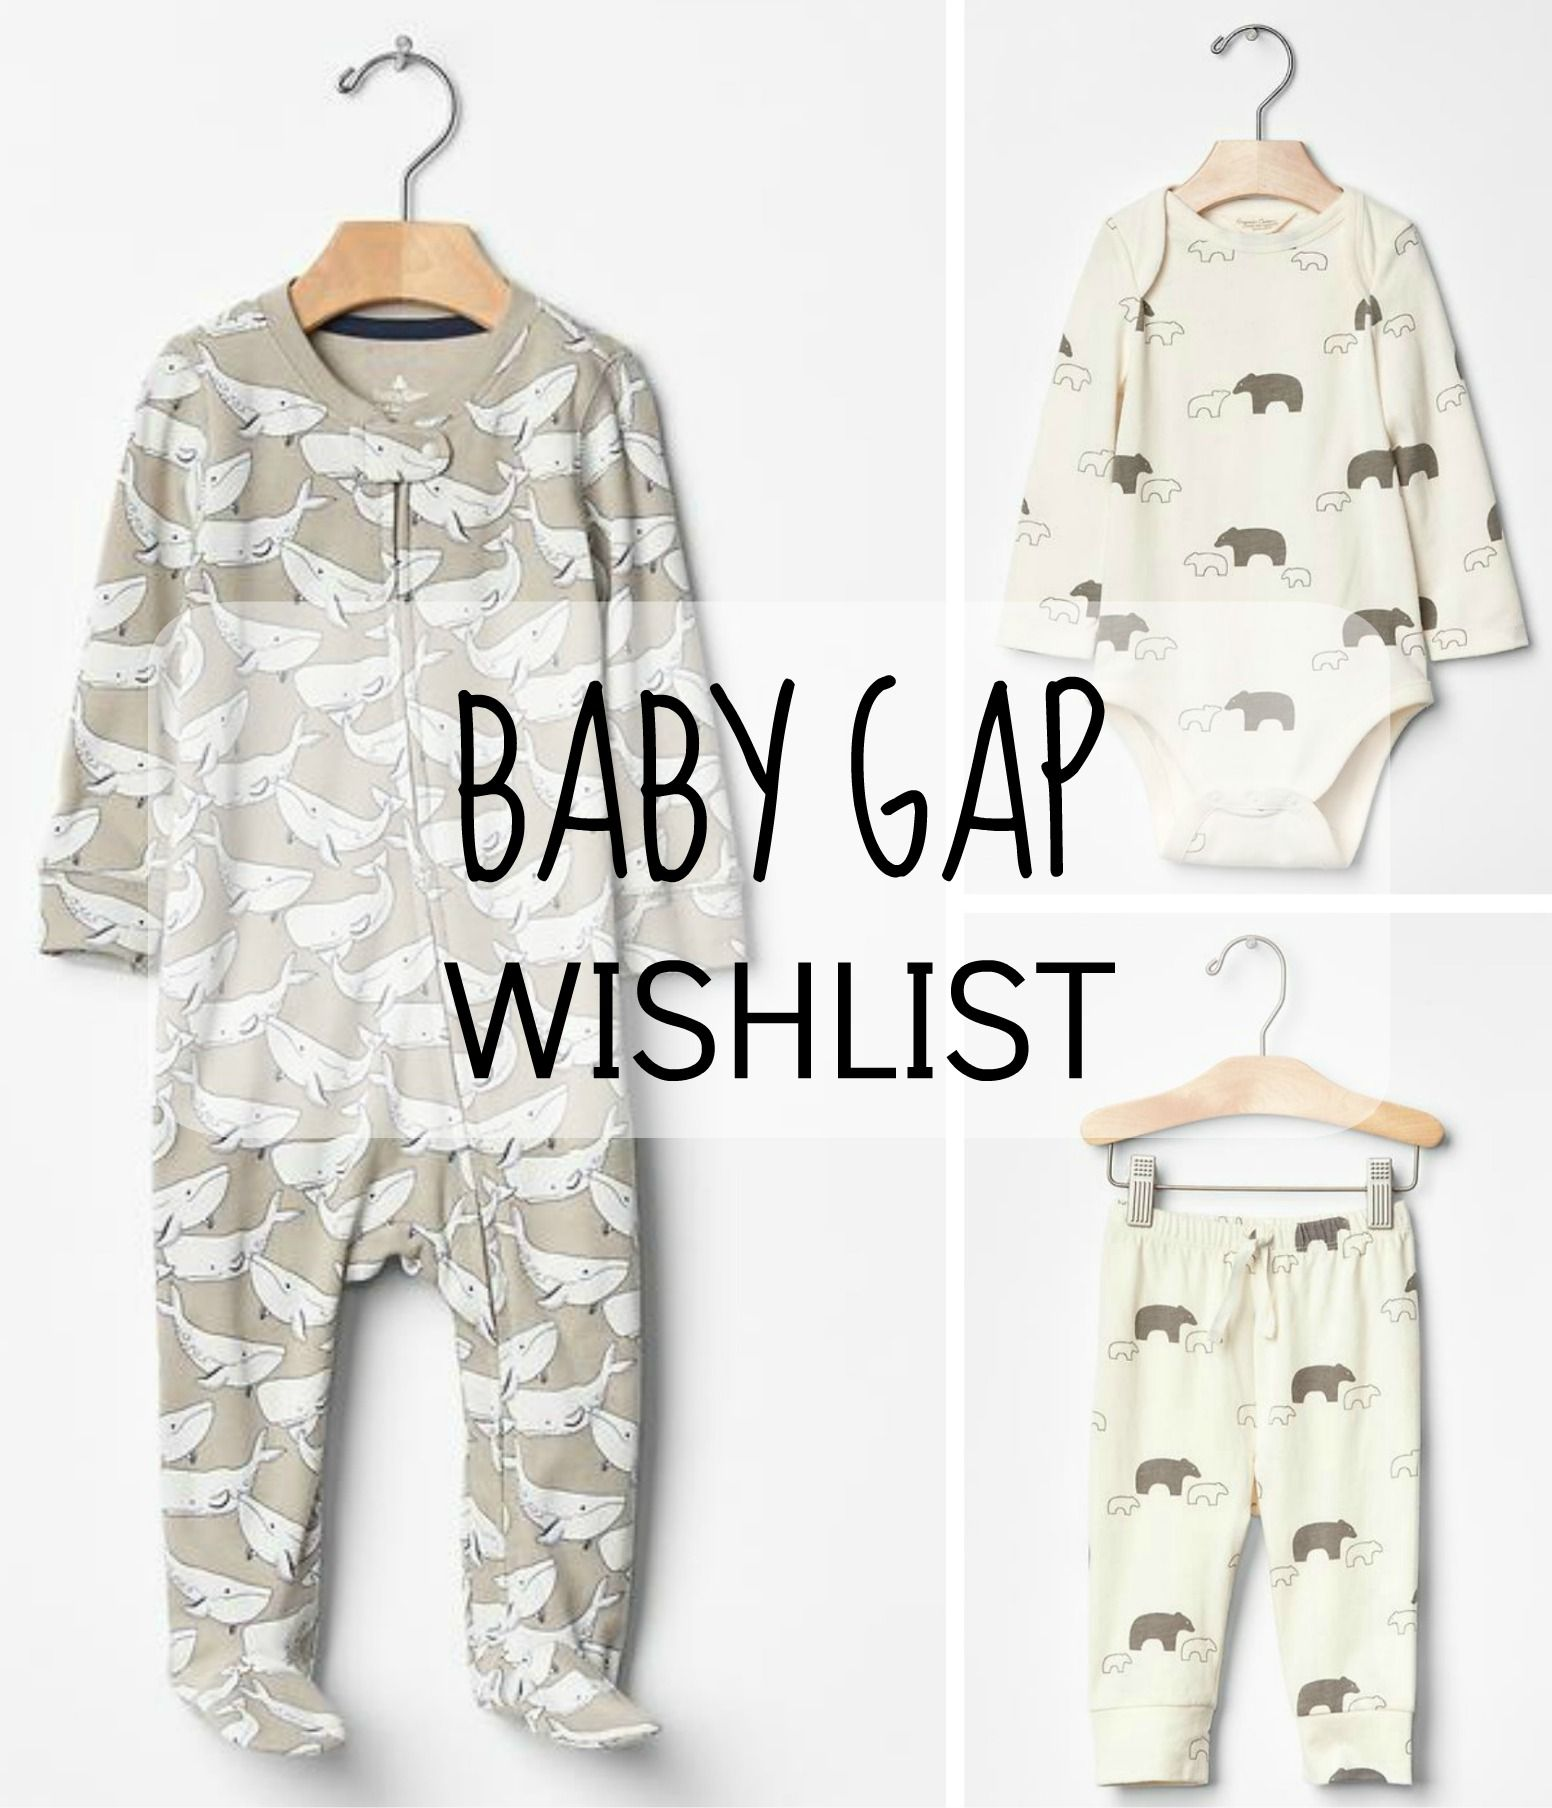 Baby Gap Wishlist for Baby Boy